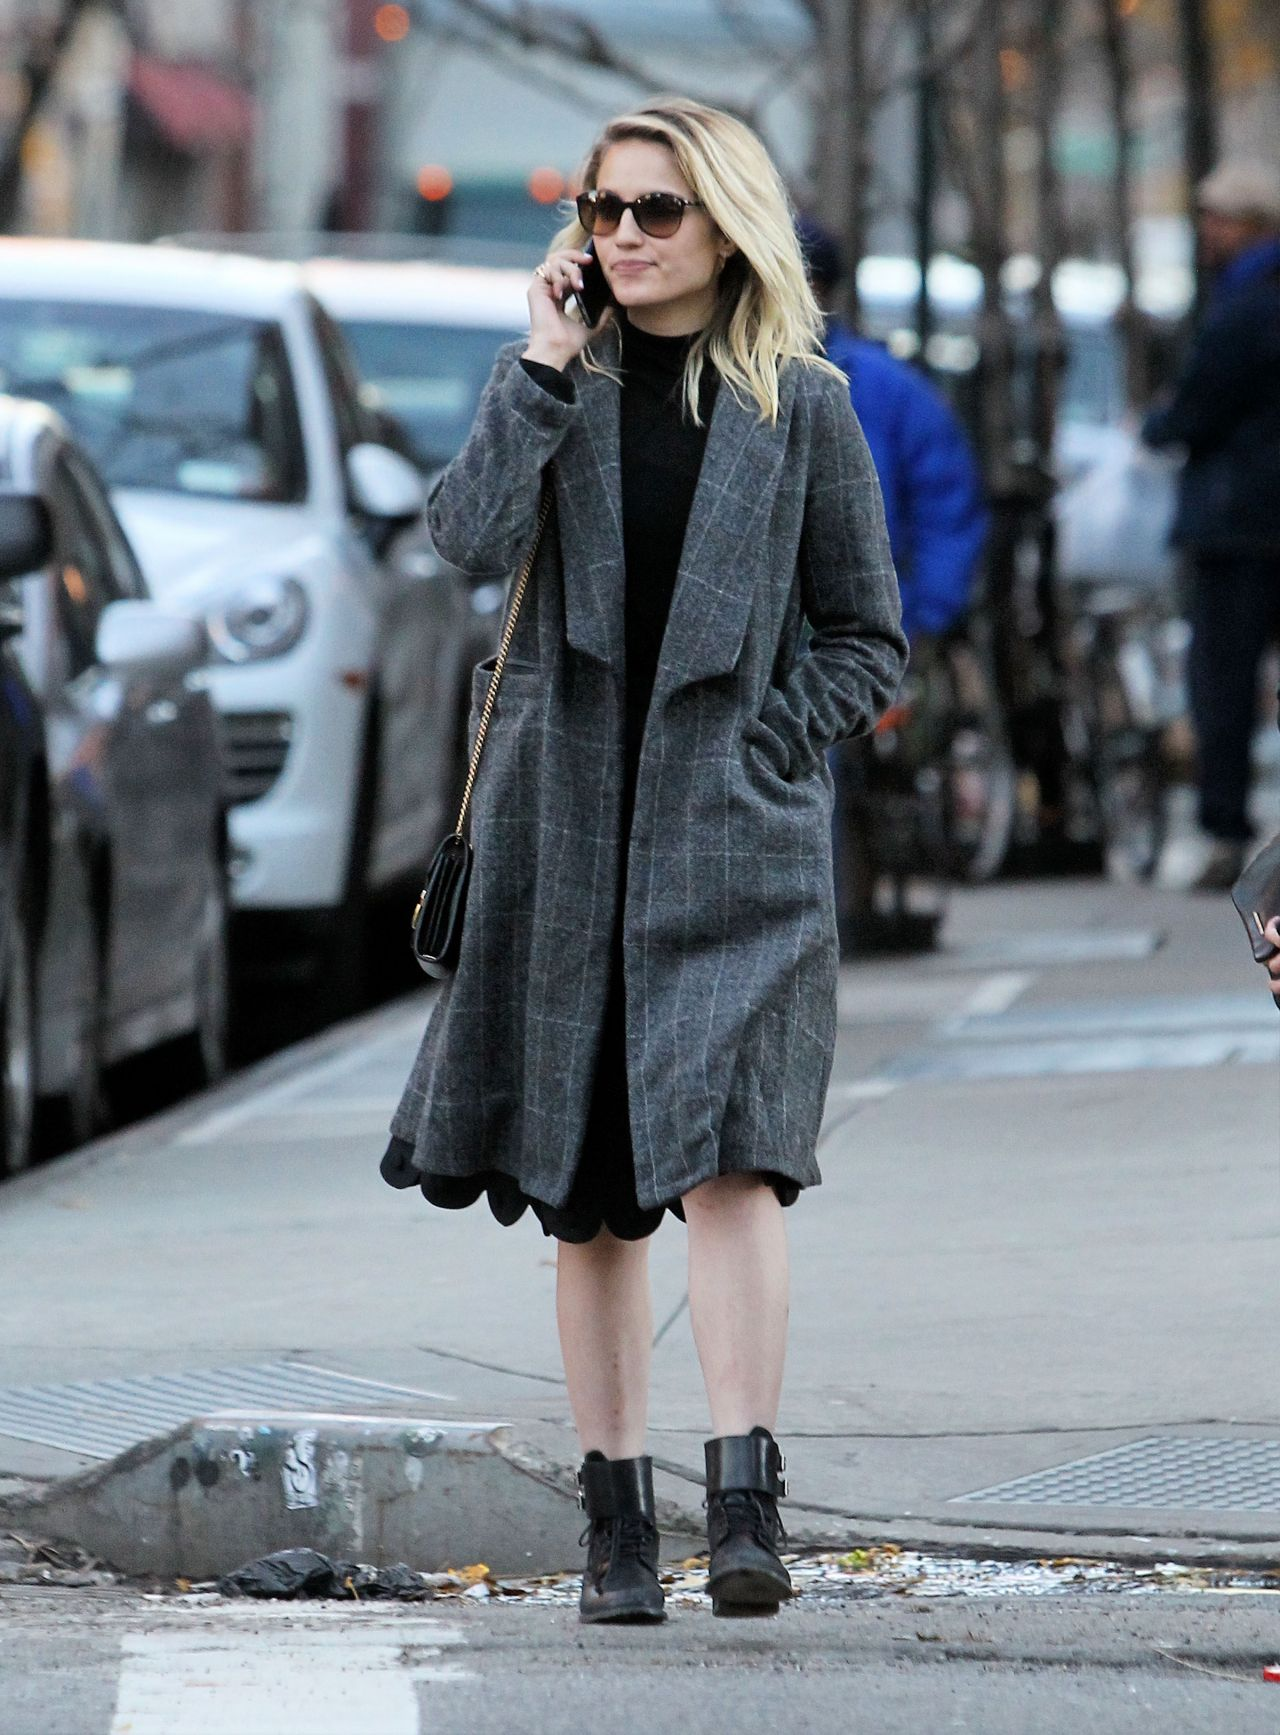 Dianna Agron Autumn Style Out In New York City 11 20 2015